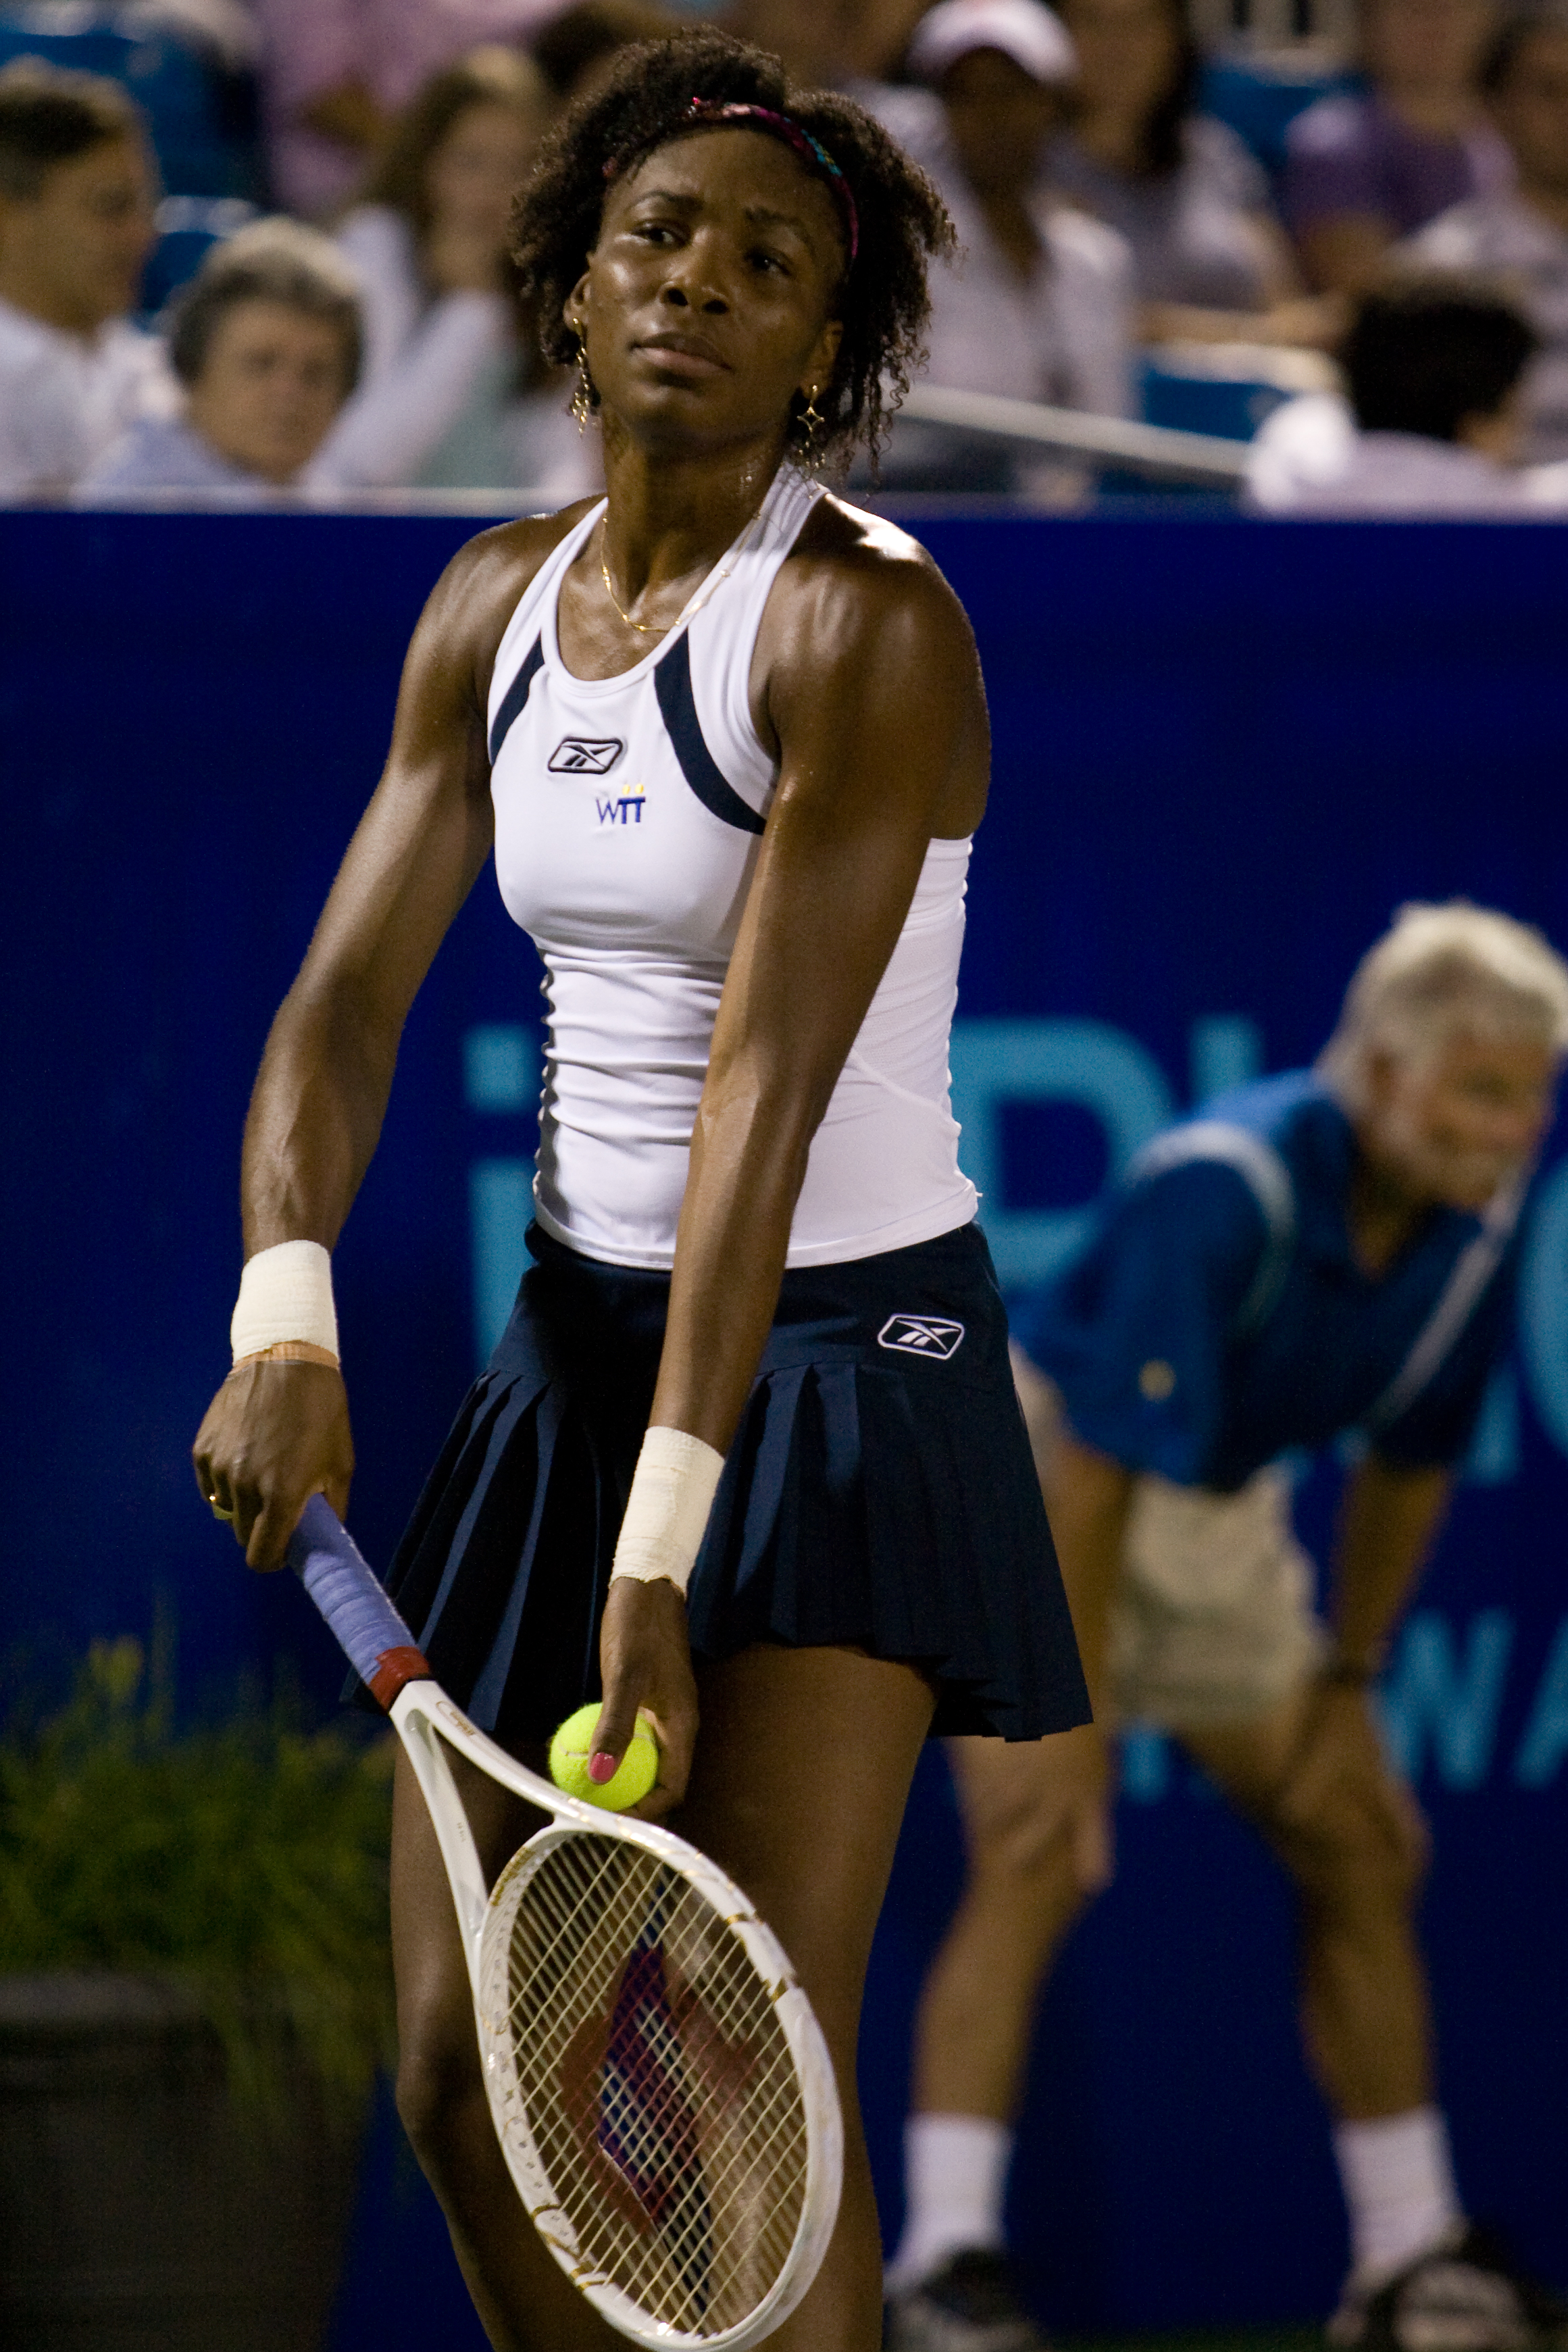 venus personals On sunday morning (may 6, 2018) the sun-times reported the 37-year-old tennis player venus williams and her boyfriend, to be shopping for engagement rings naturally, the article sent the facebook and twitter into a frenzy.